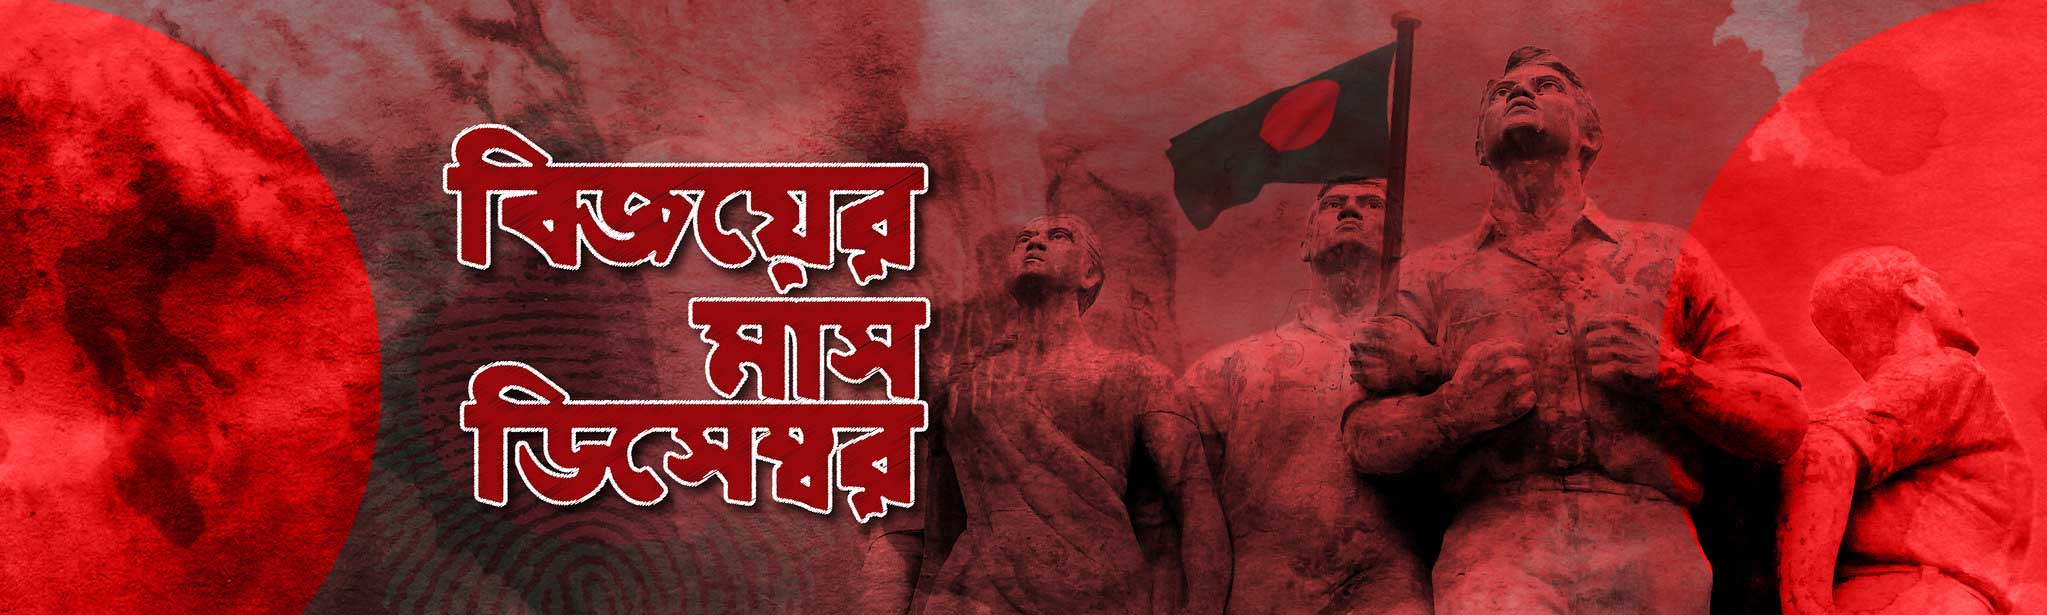 victory day Bangladesh photo